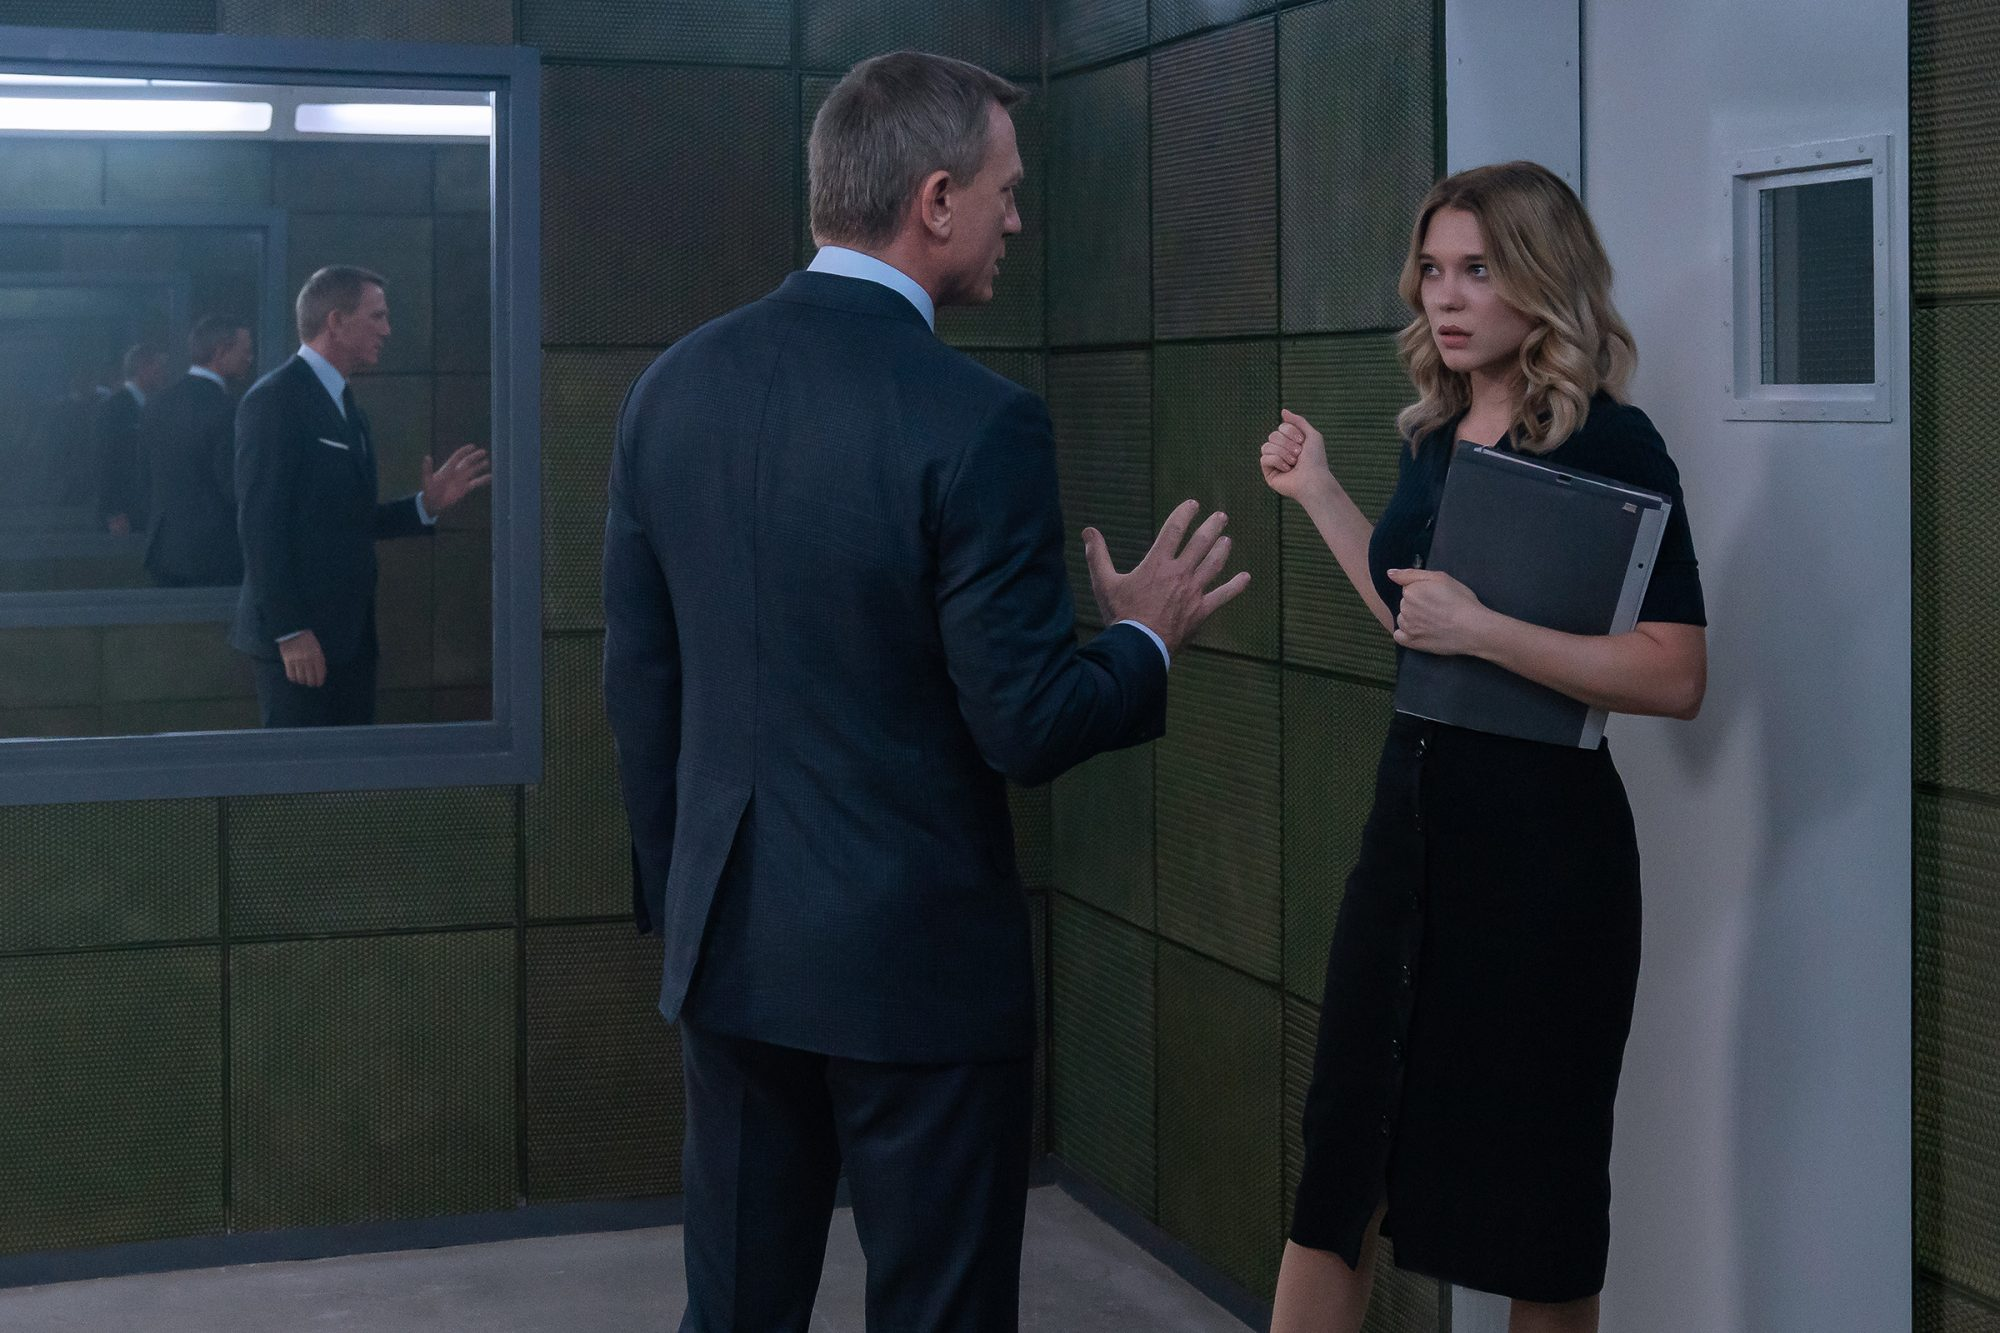 James Bond (Daniel Craig) in discussion with Dr. Madeleine Swann (Léa Seydoux) in NO TIME TO DIE, a DANJAQ and Metro Goldwyn Mayer Pictures film